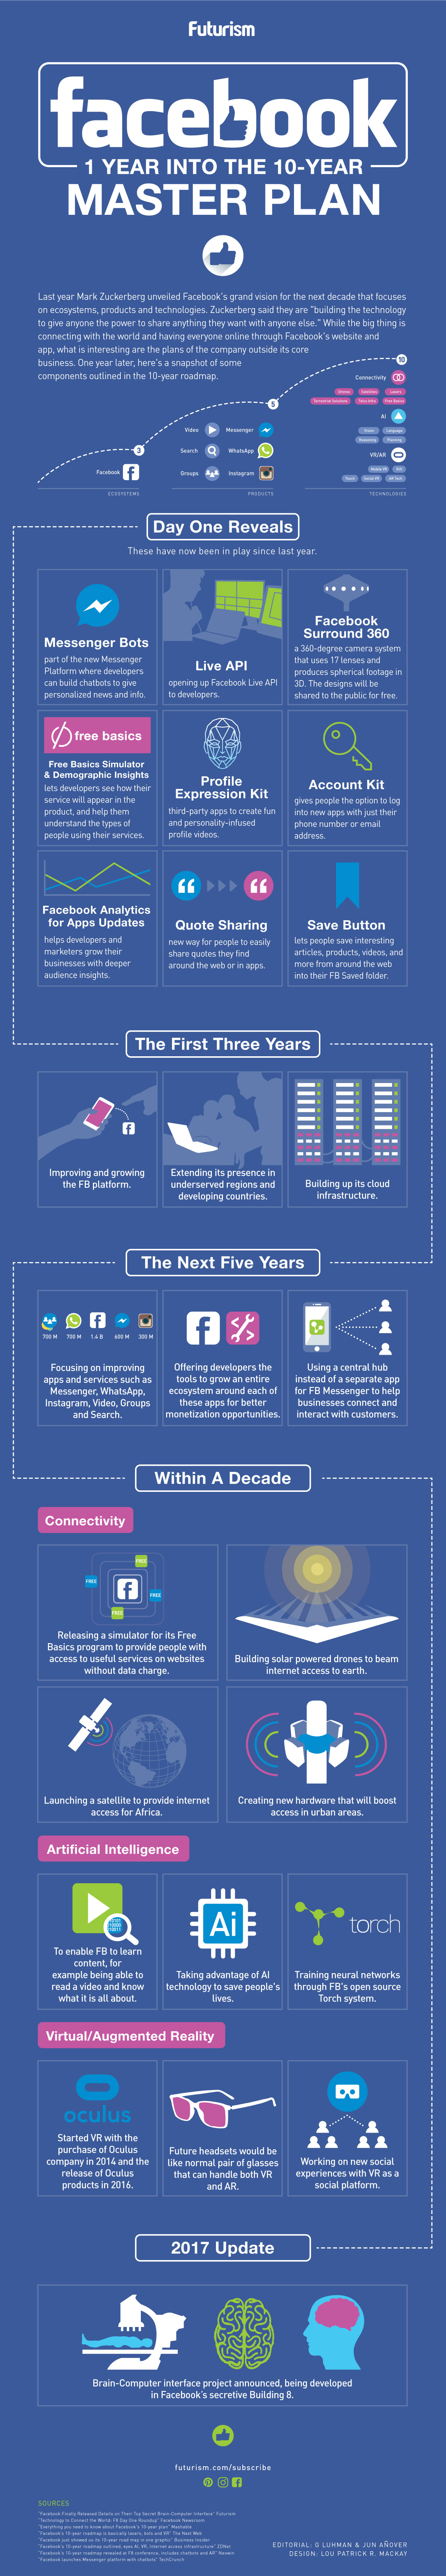 Inside Facebook's 10-Year Master Plan [Infographic] | Social Media Today